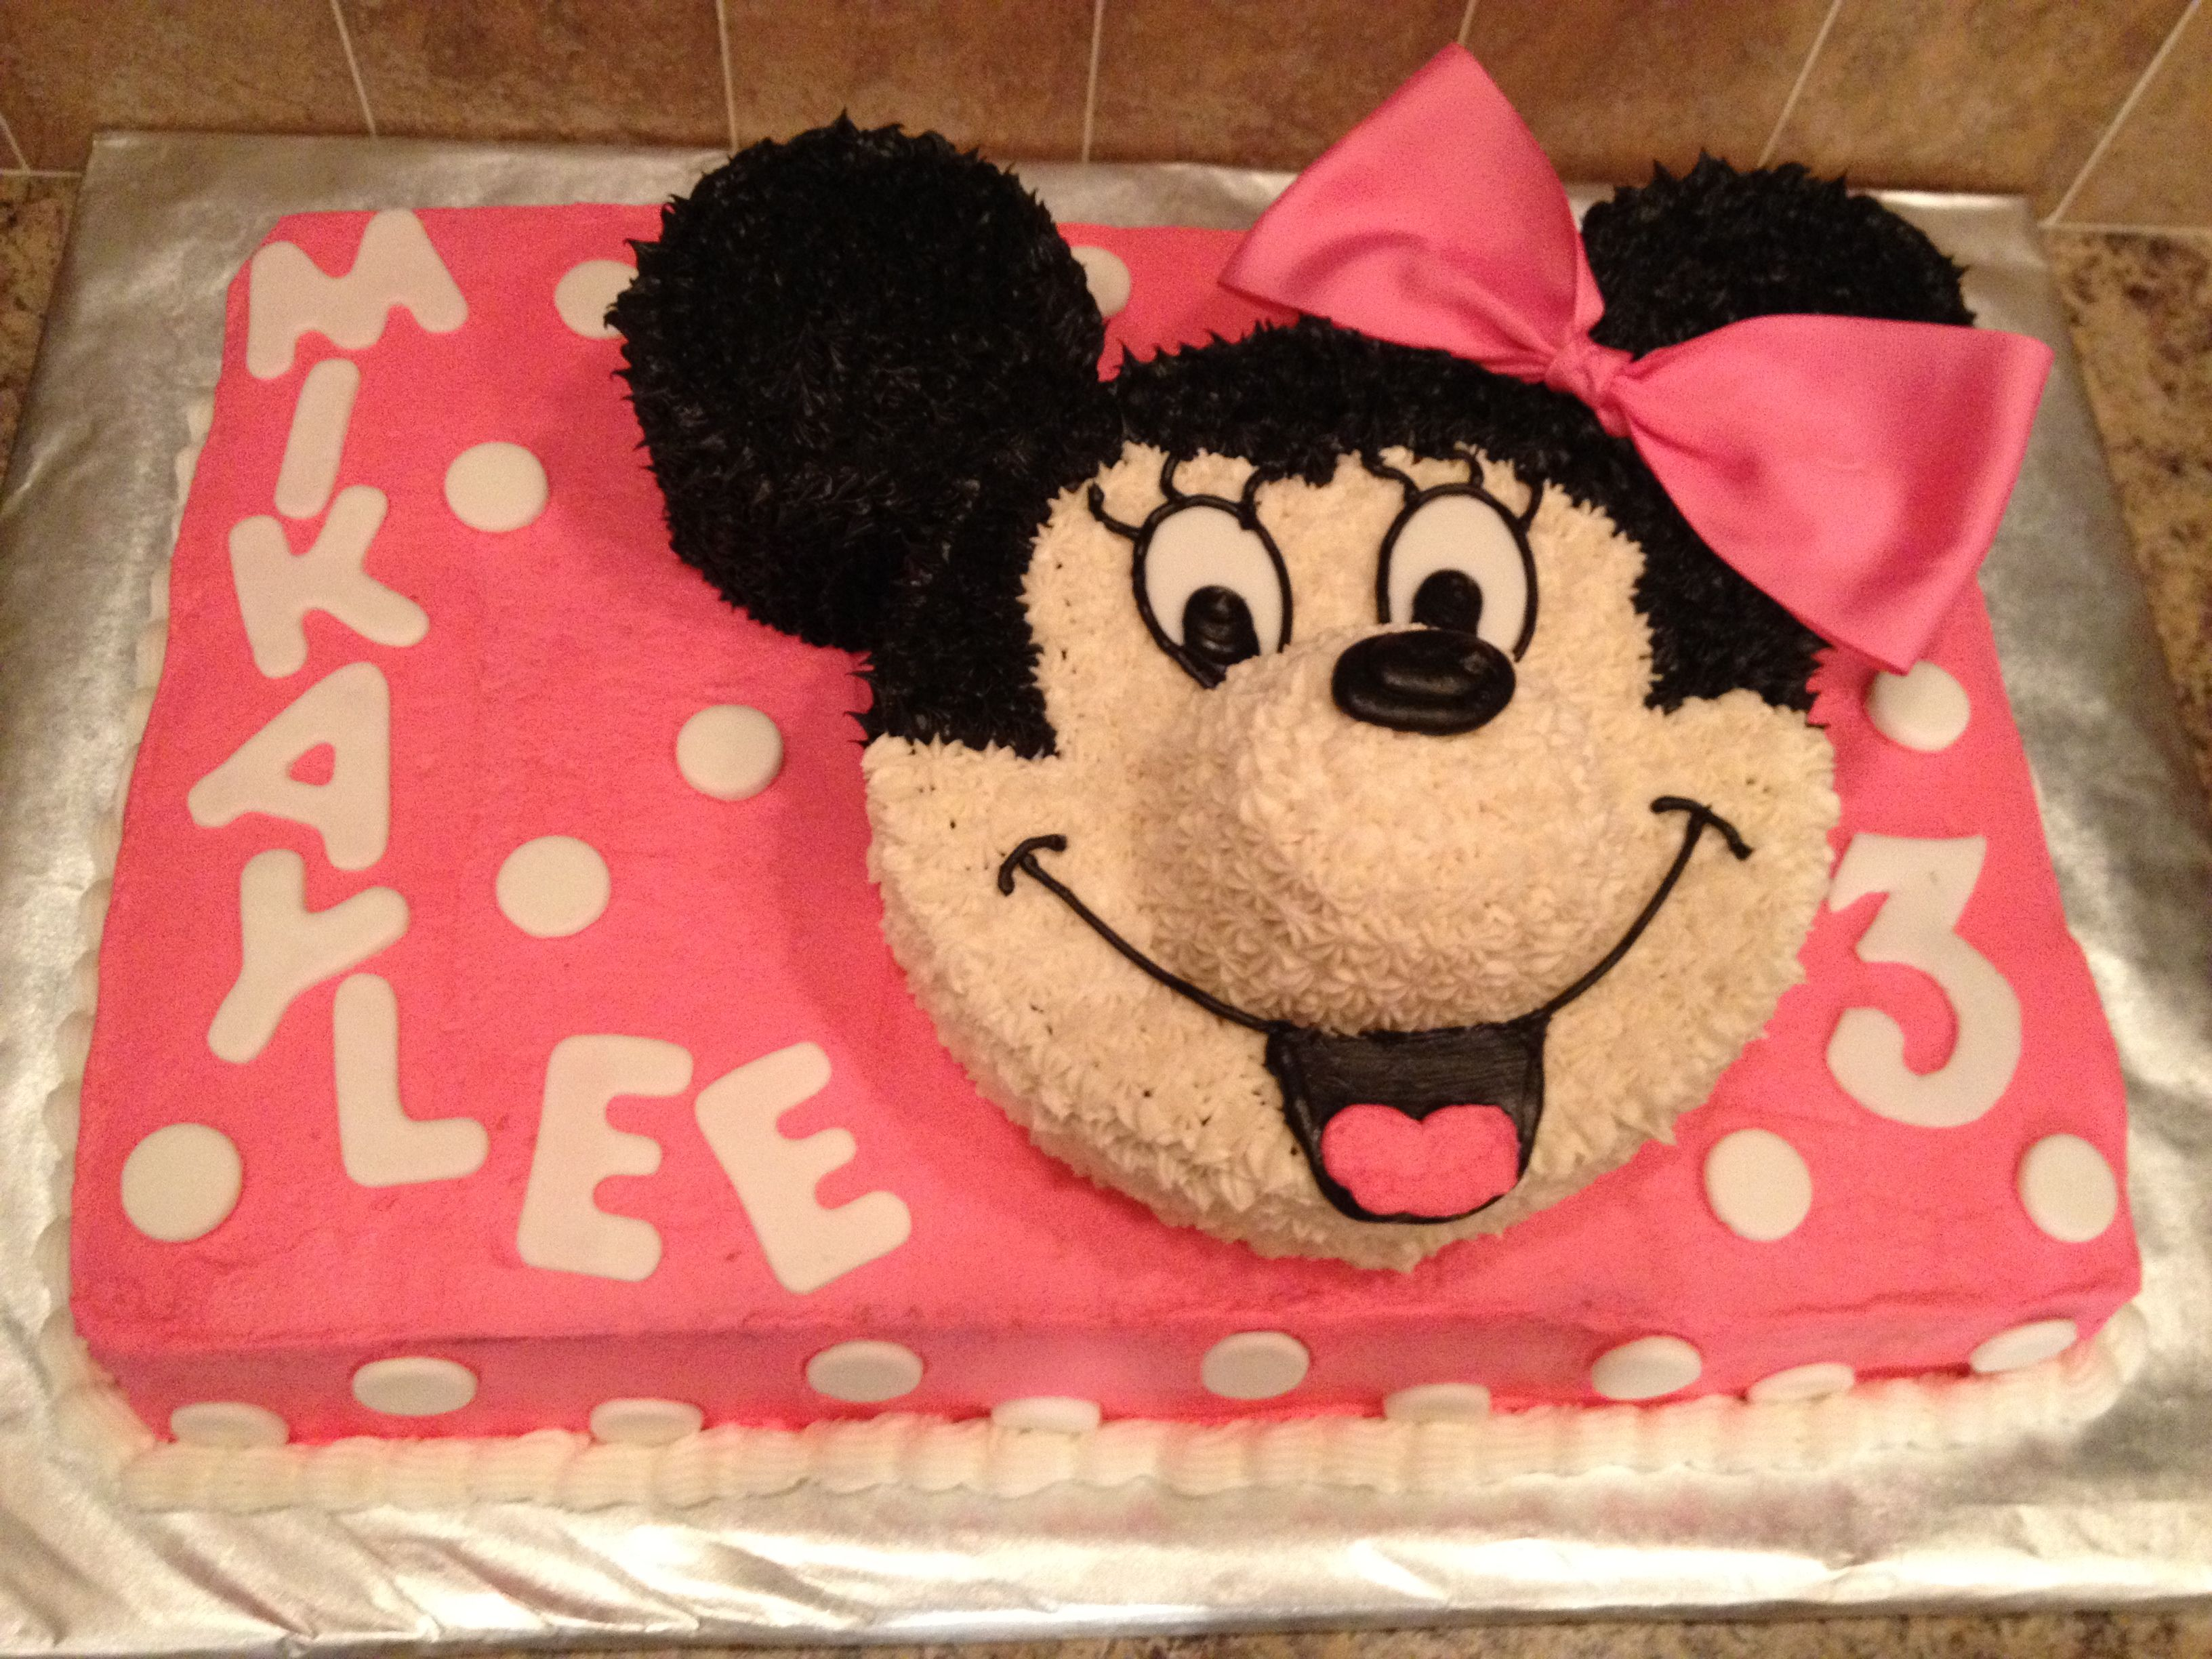 Cake we made for my daughter Mikaylees 3 yr birthday!  She LOVED it!  Didn't want us to eat it!